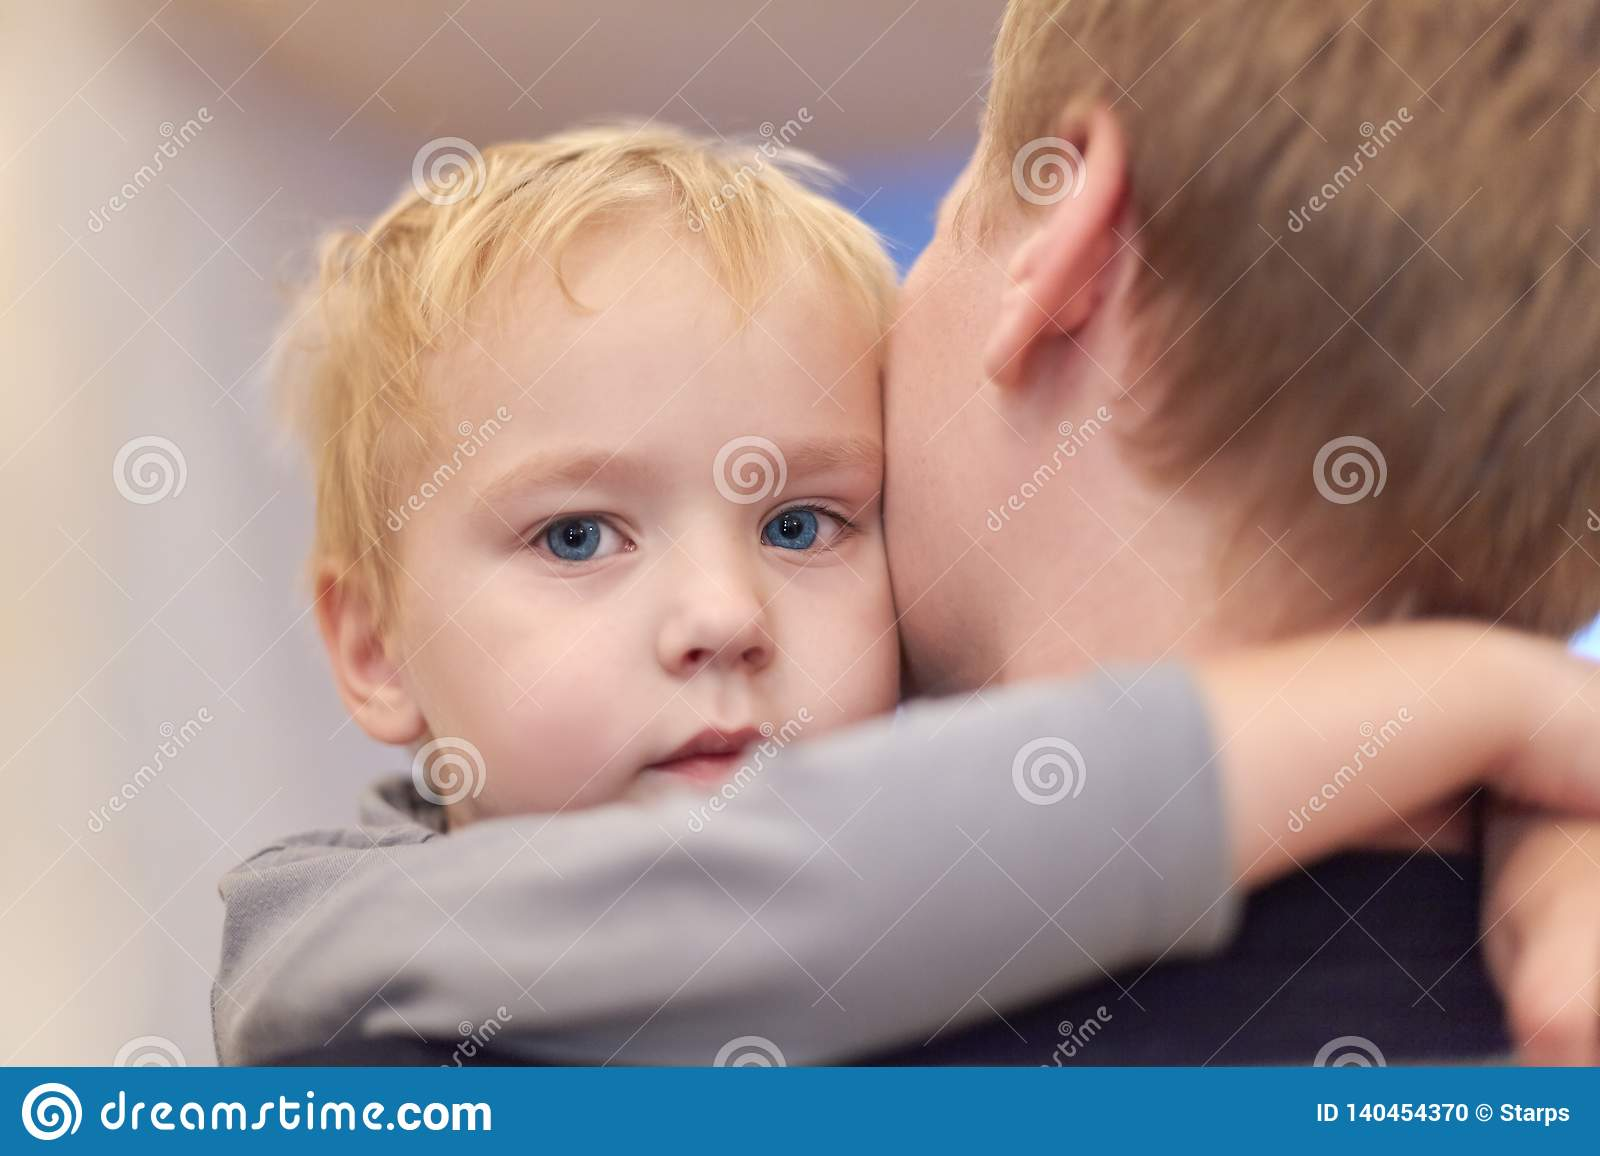 Young happy man holding his cute son. Baby boy embraces the male neck. Serious little kid with blue eyes napping in parent arms. S